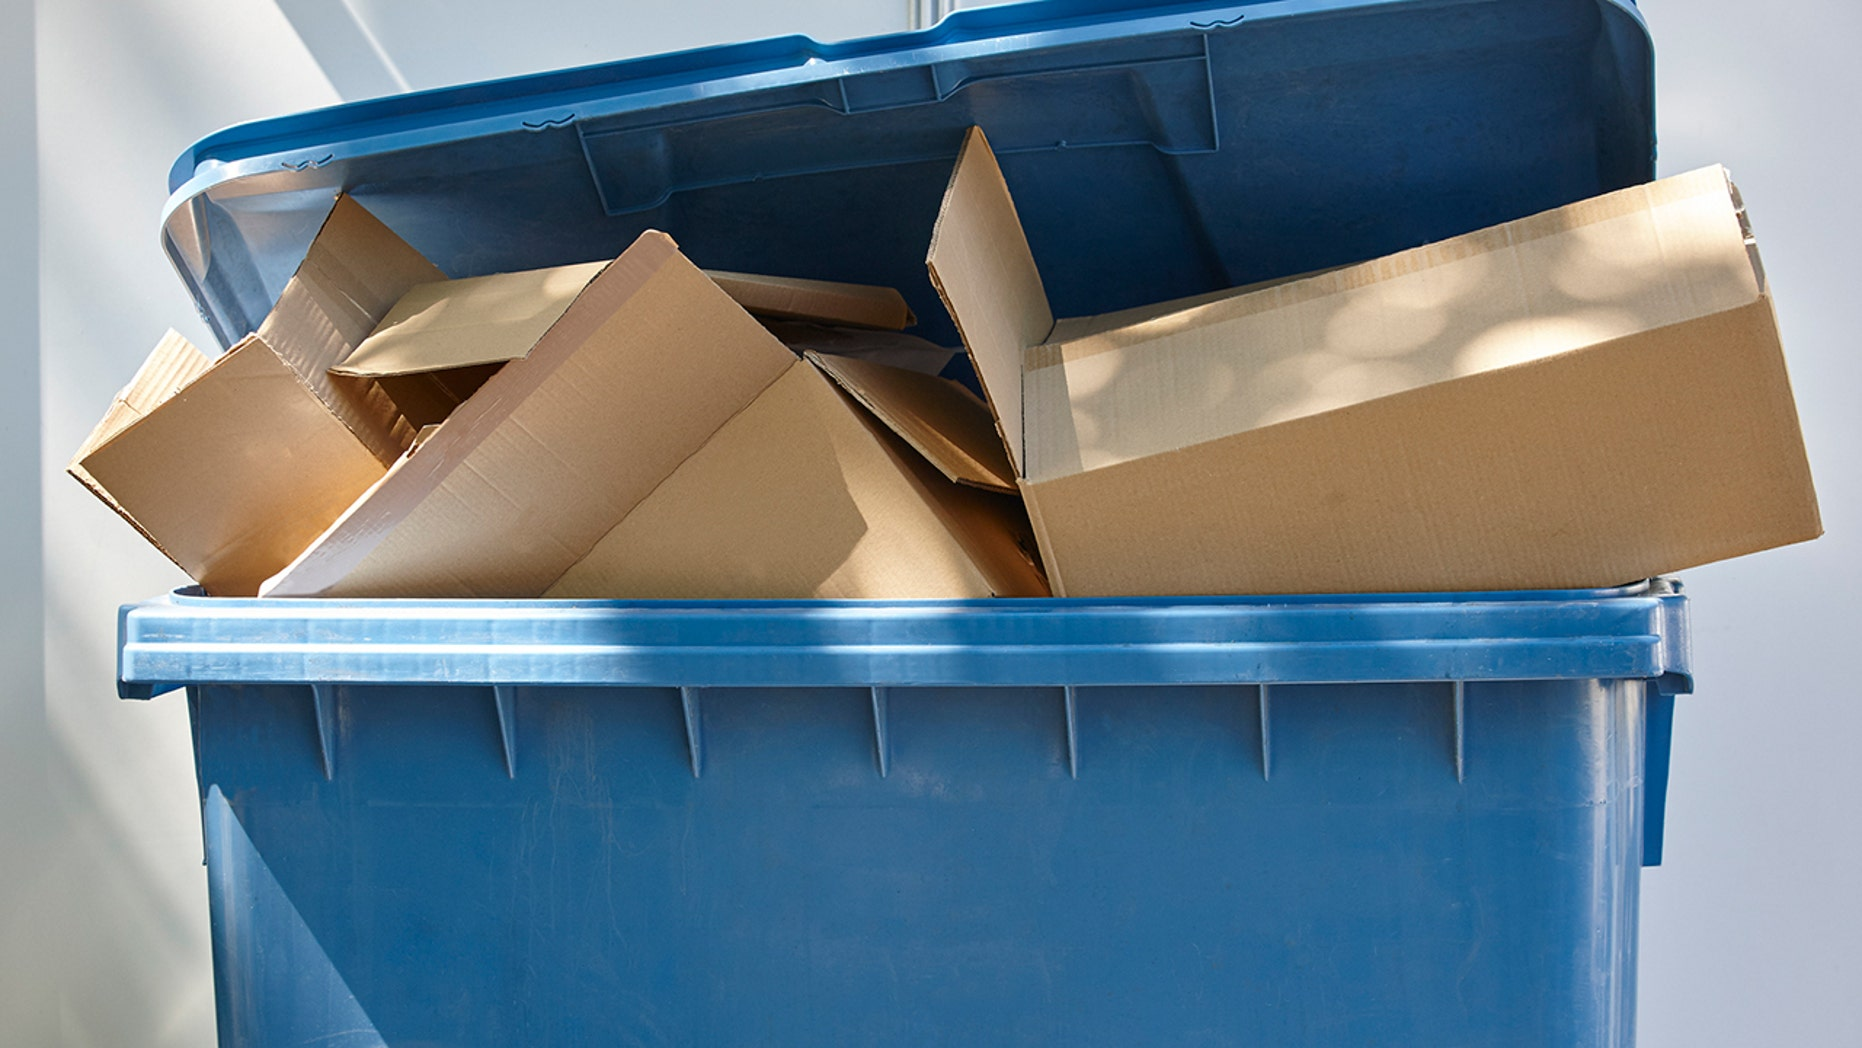 Everything from your mailbox to your trash cans could be alerting potential burglars of your whereabouts and valuable belongings.